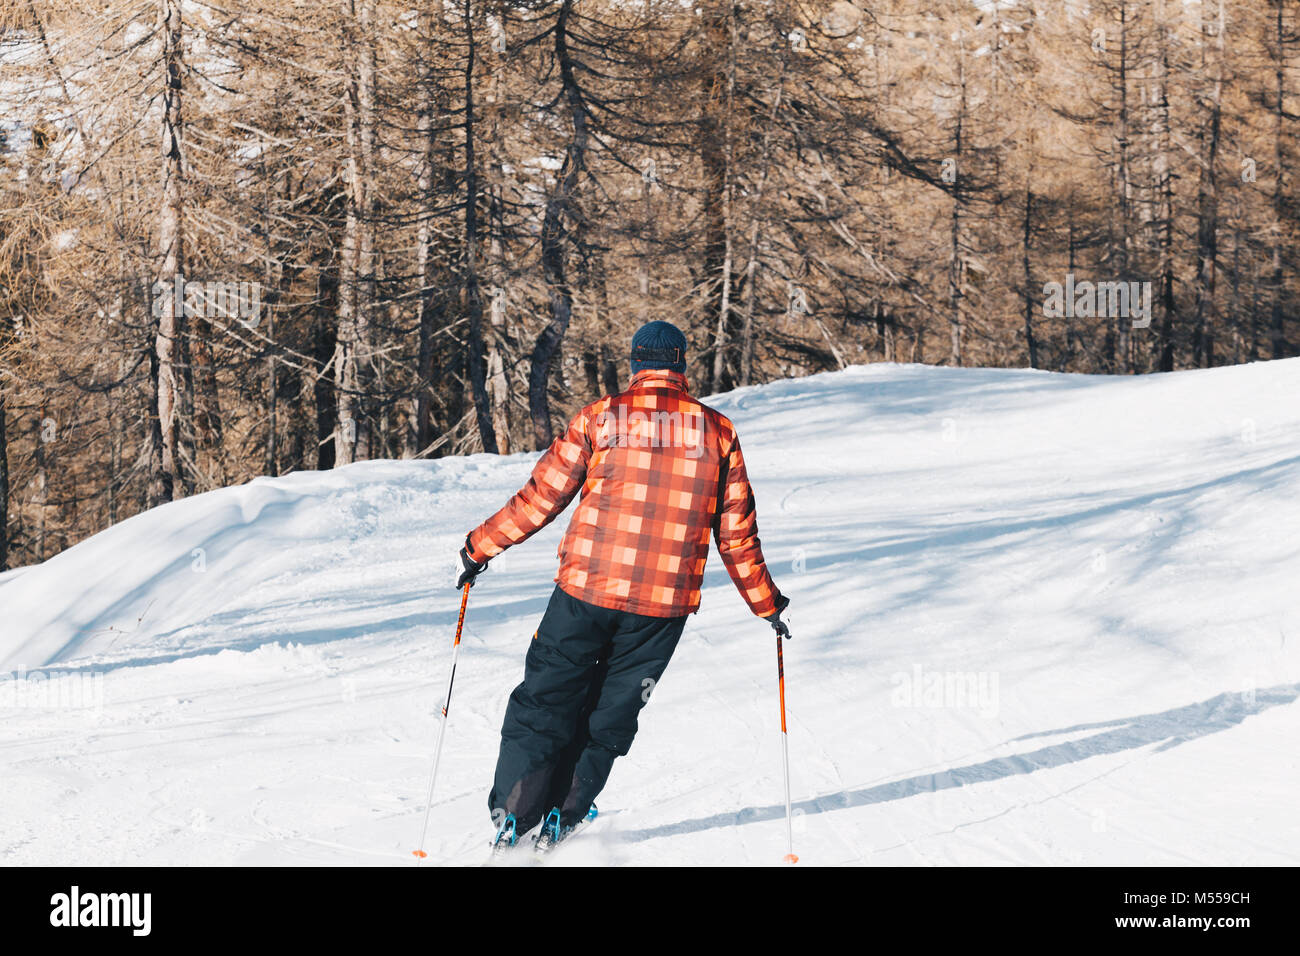 Skier skiing with checked jacket down the slope in the forest - Downhill in high mountains. - Stock Image